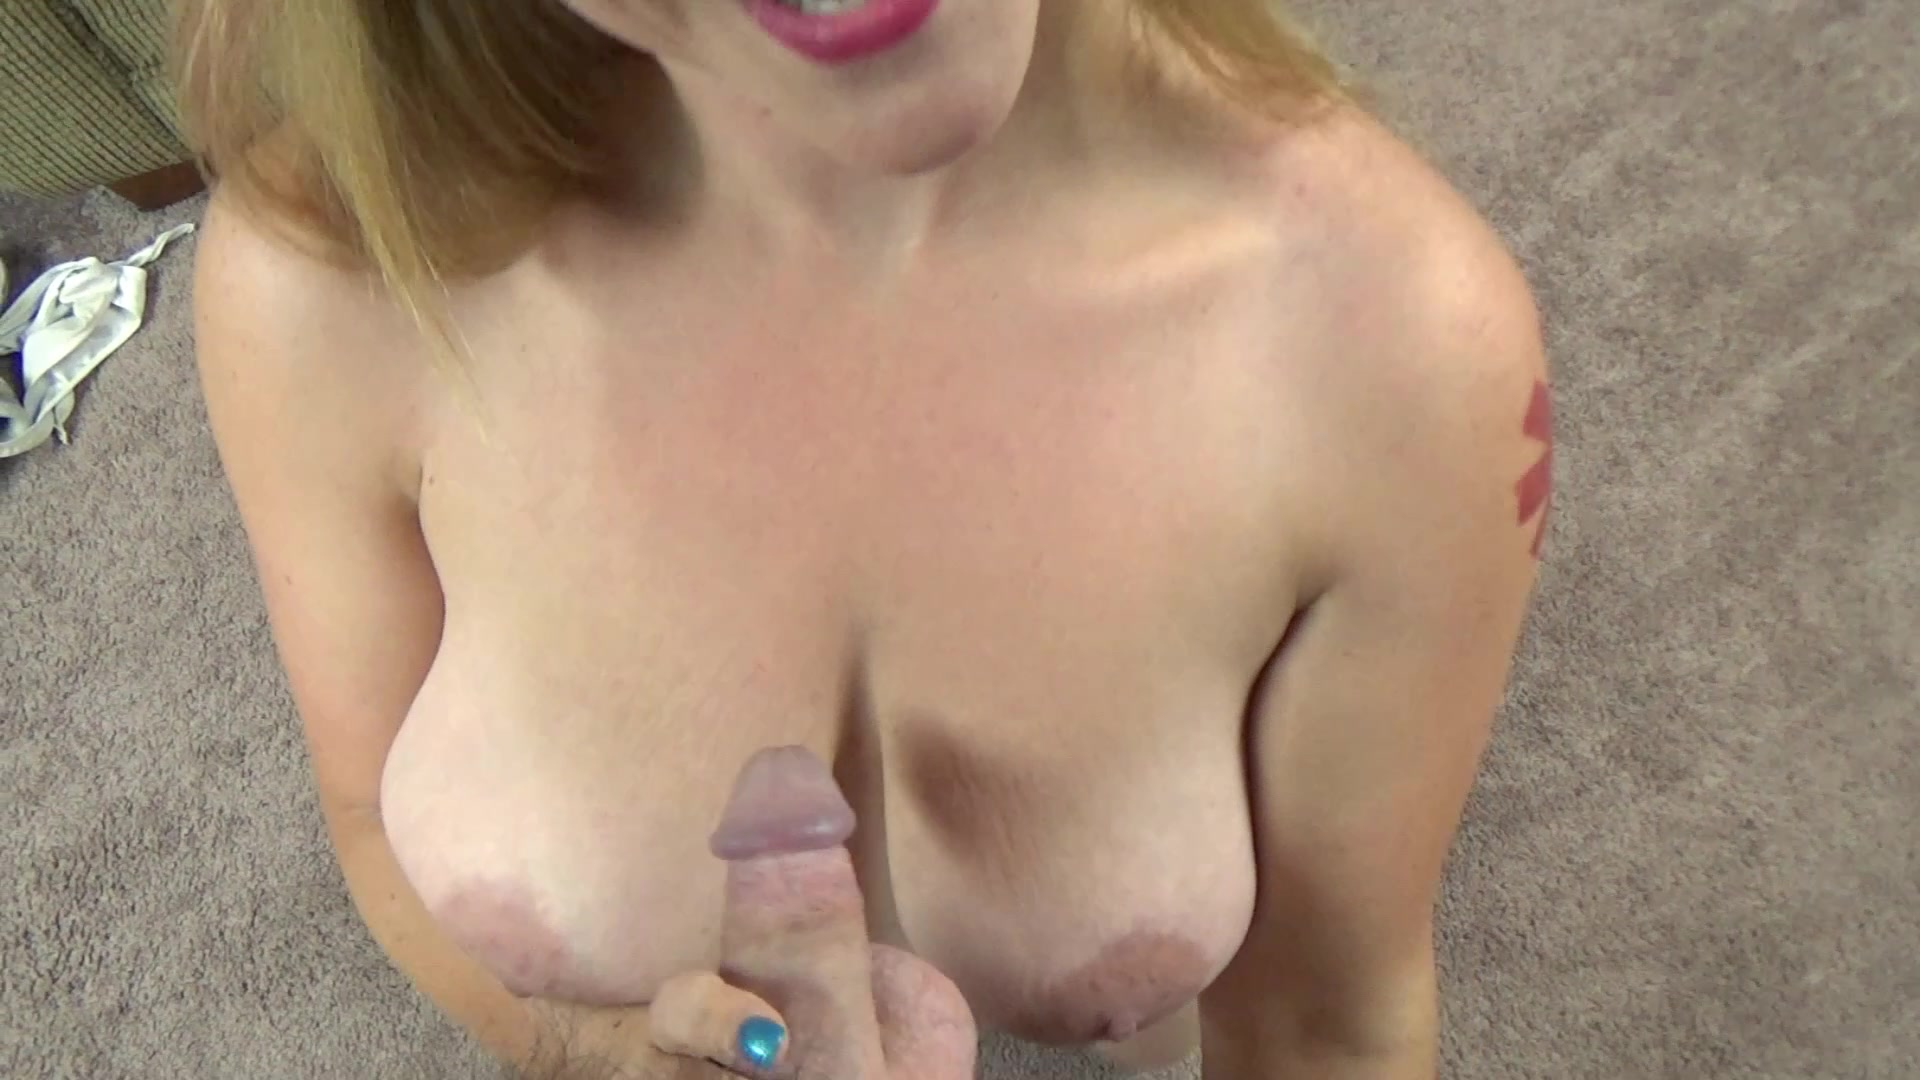 Redhead milf lia shayde uses a dong to pleasure her pussy 4